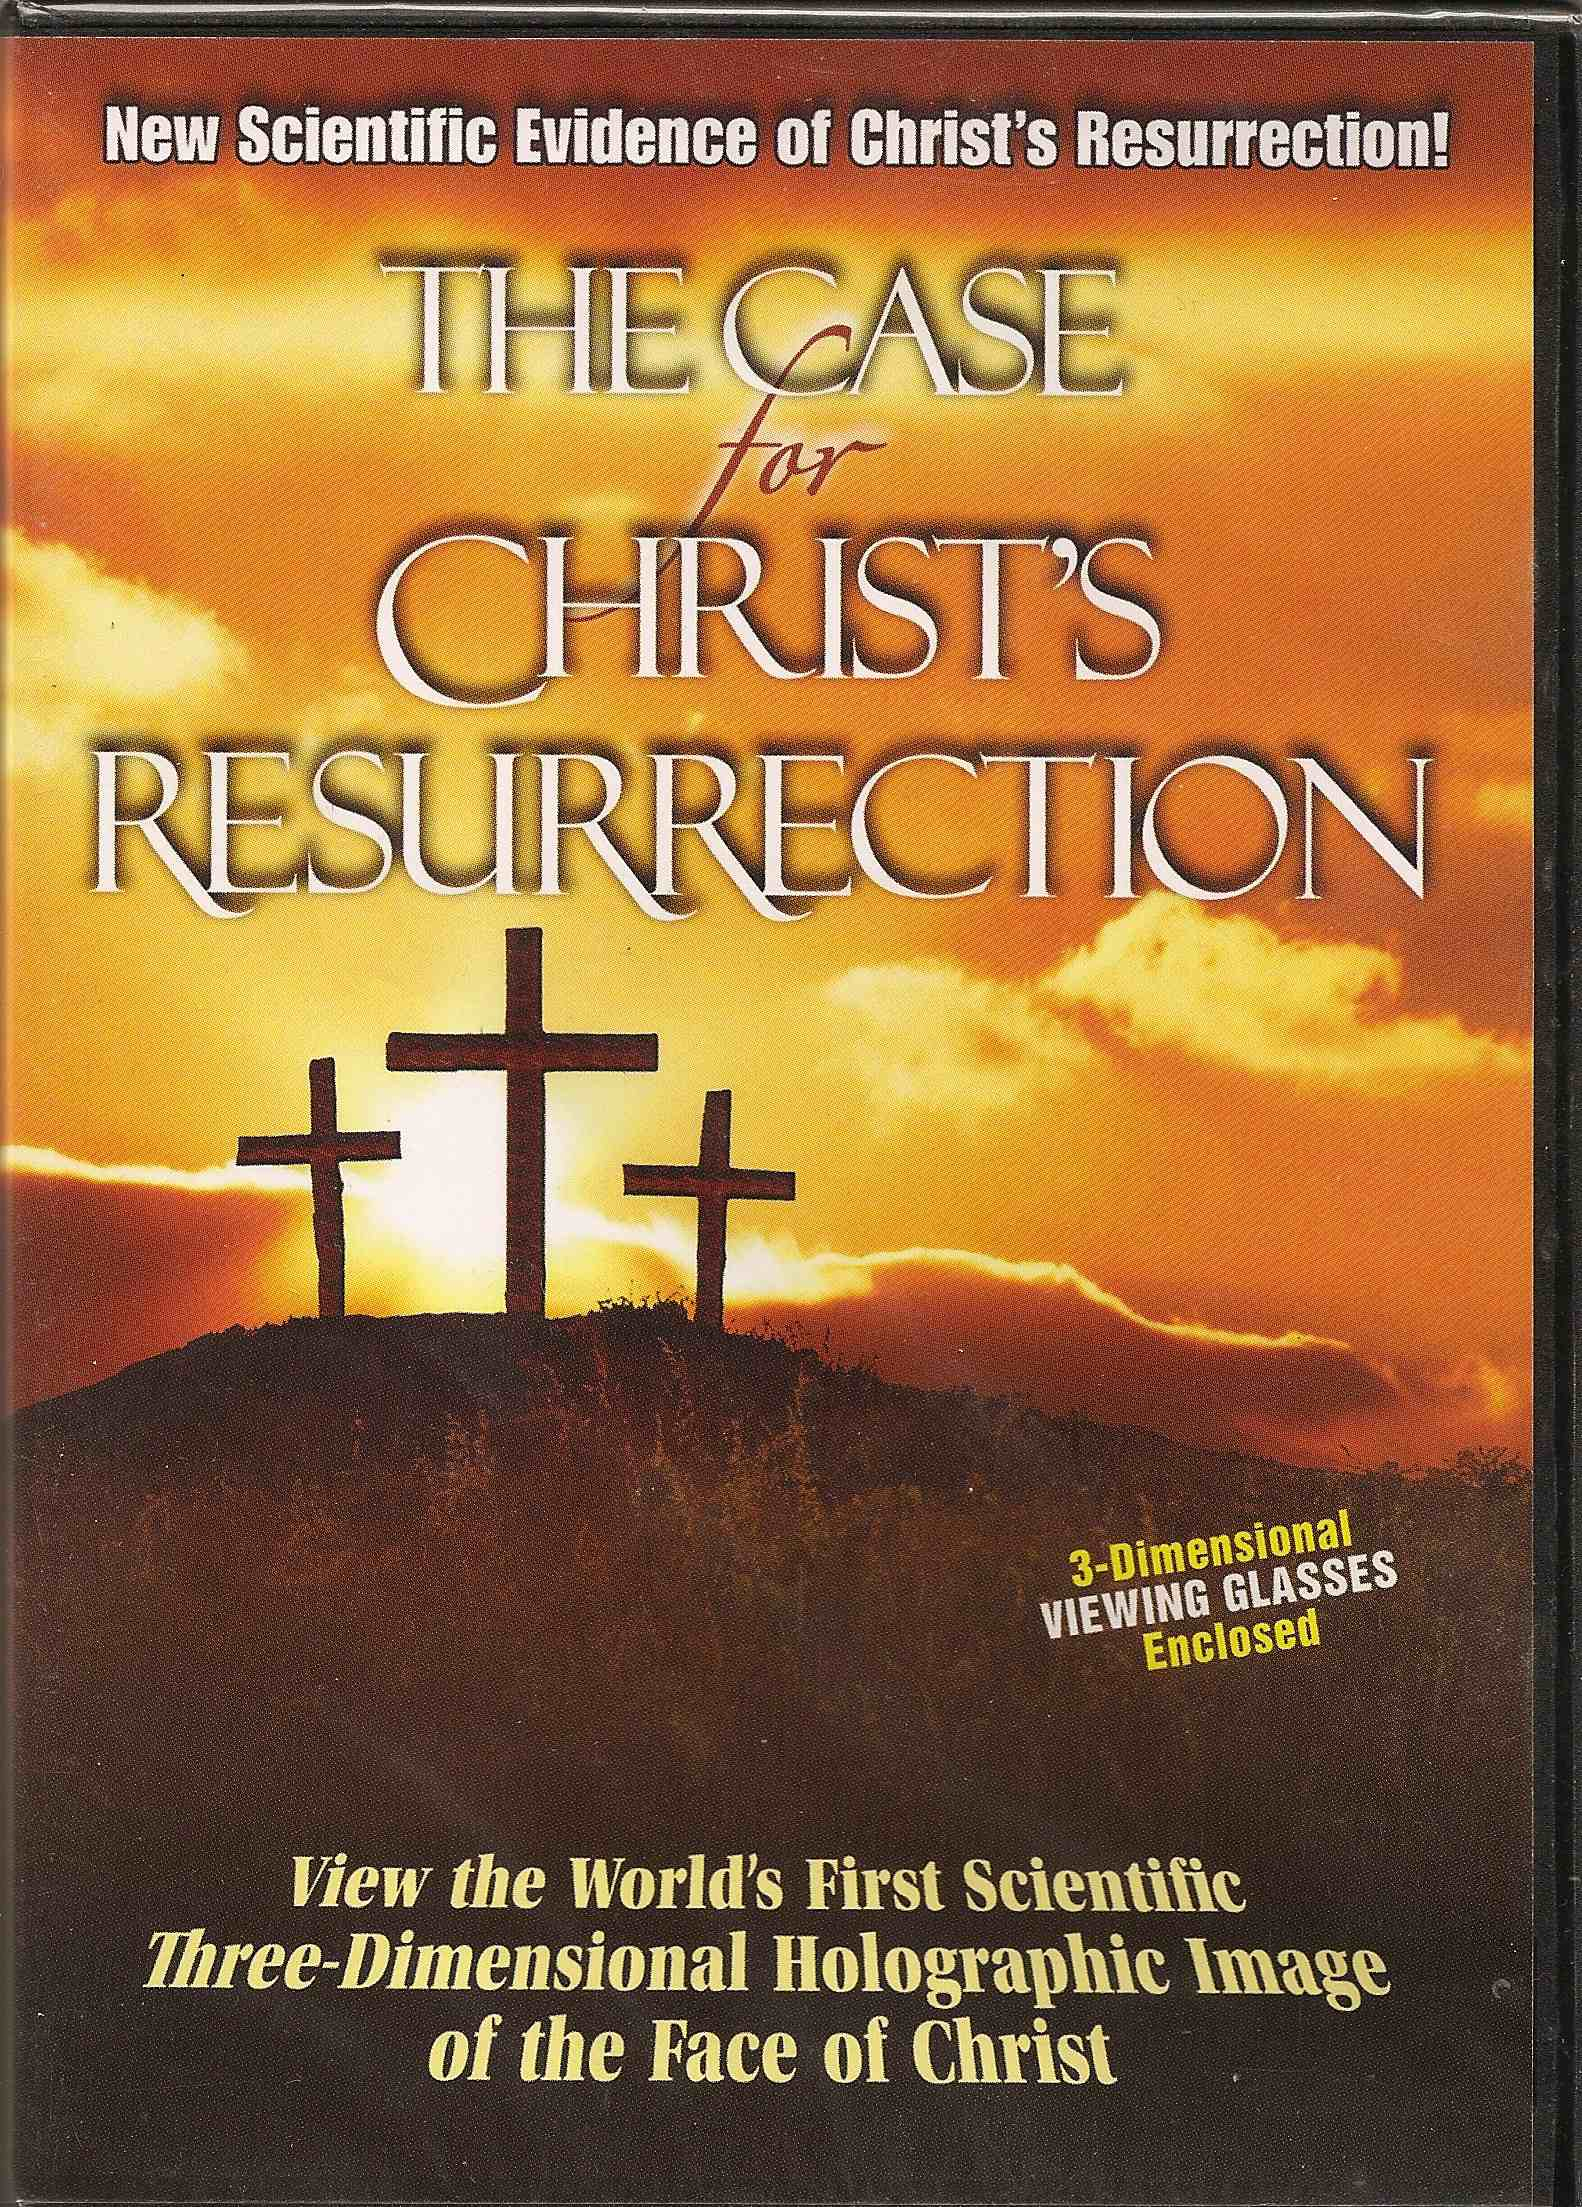 The Case for Jesus Christ Resurrected